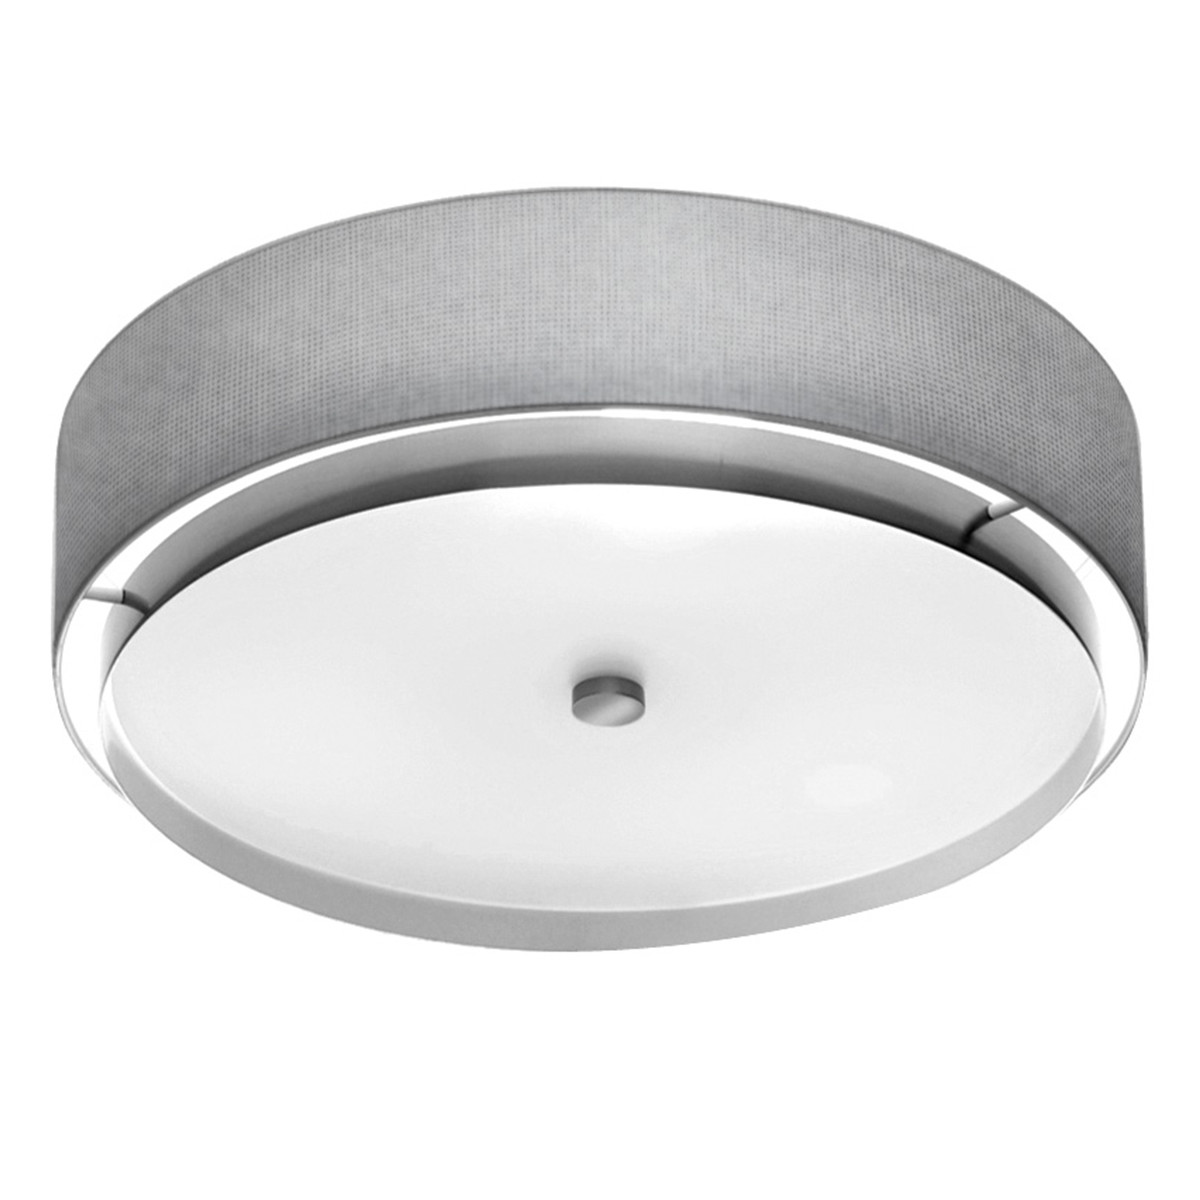 estiluz iris t 2713 deckenleuchte 60 cm casa de. Black Bedroom Furniture Sets. Home Design Ideas